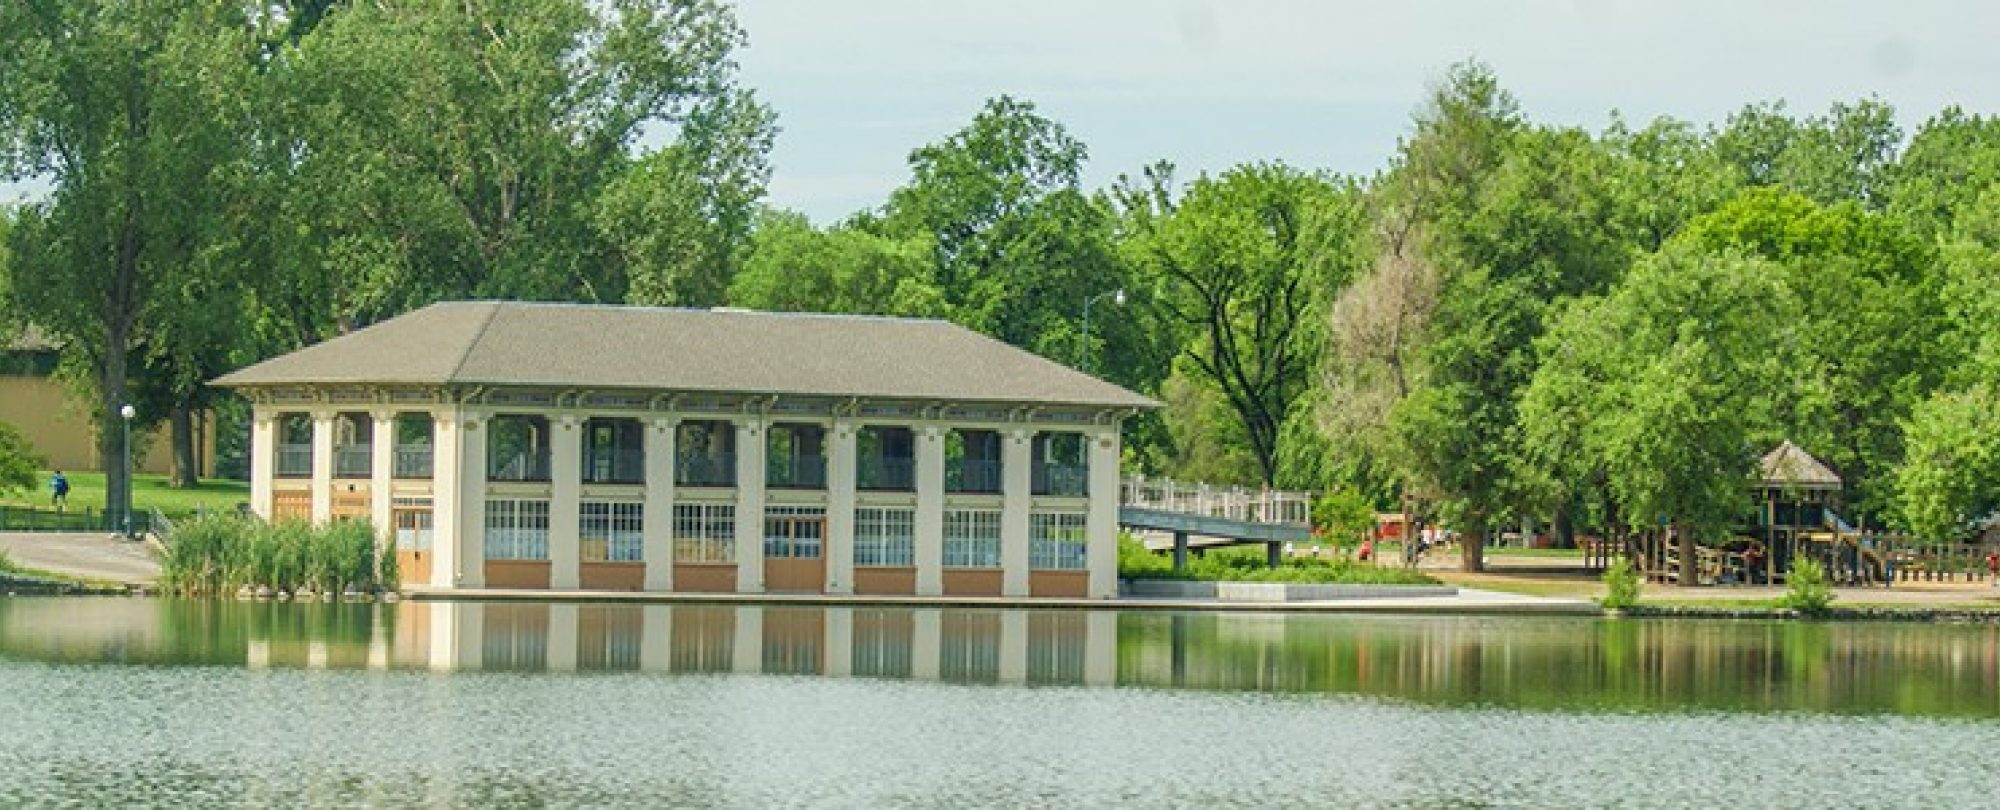 Washington Park Boathouse